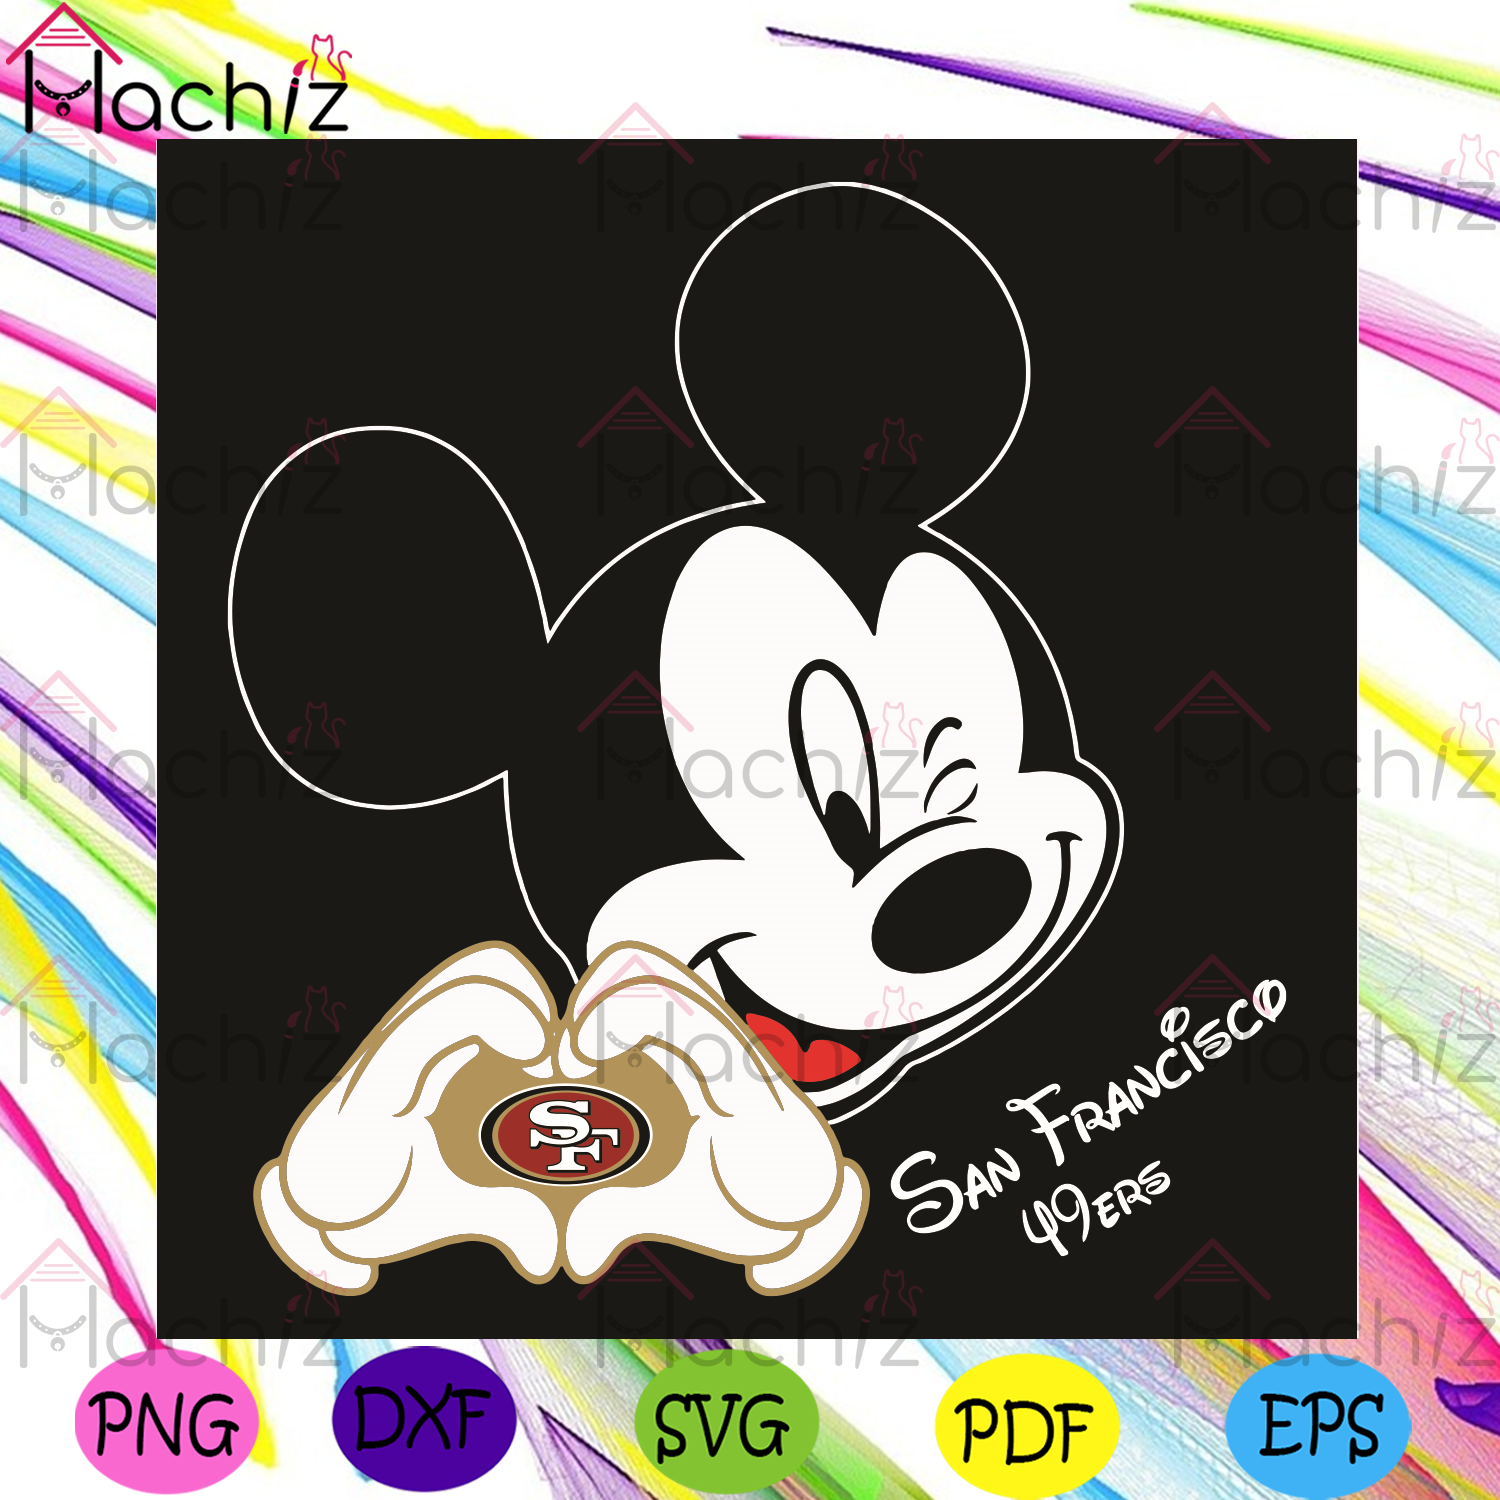 San Francisco 49ers Svg, Sport Svg, San Francisco 49ers Football Team Svg, San Francisco 49ers Fans, San Francisco 49ers Lovers, San Francisco 49ers Gifts, San Francisco 49ers Logo Svg, Mickey Heart Svg, NFL Svg, Disney Svg, Football Svg